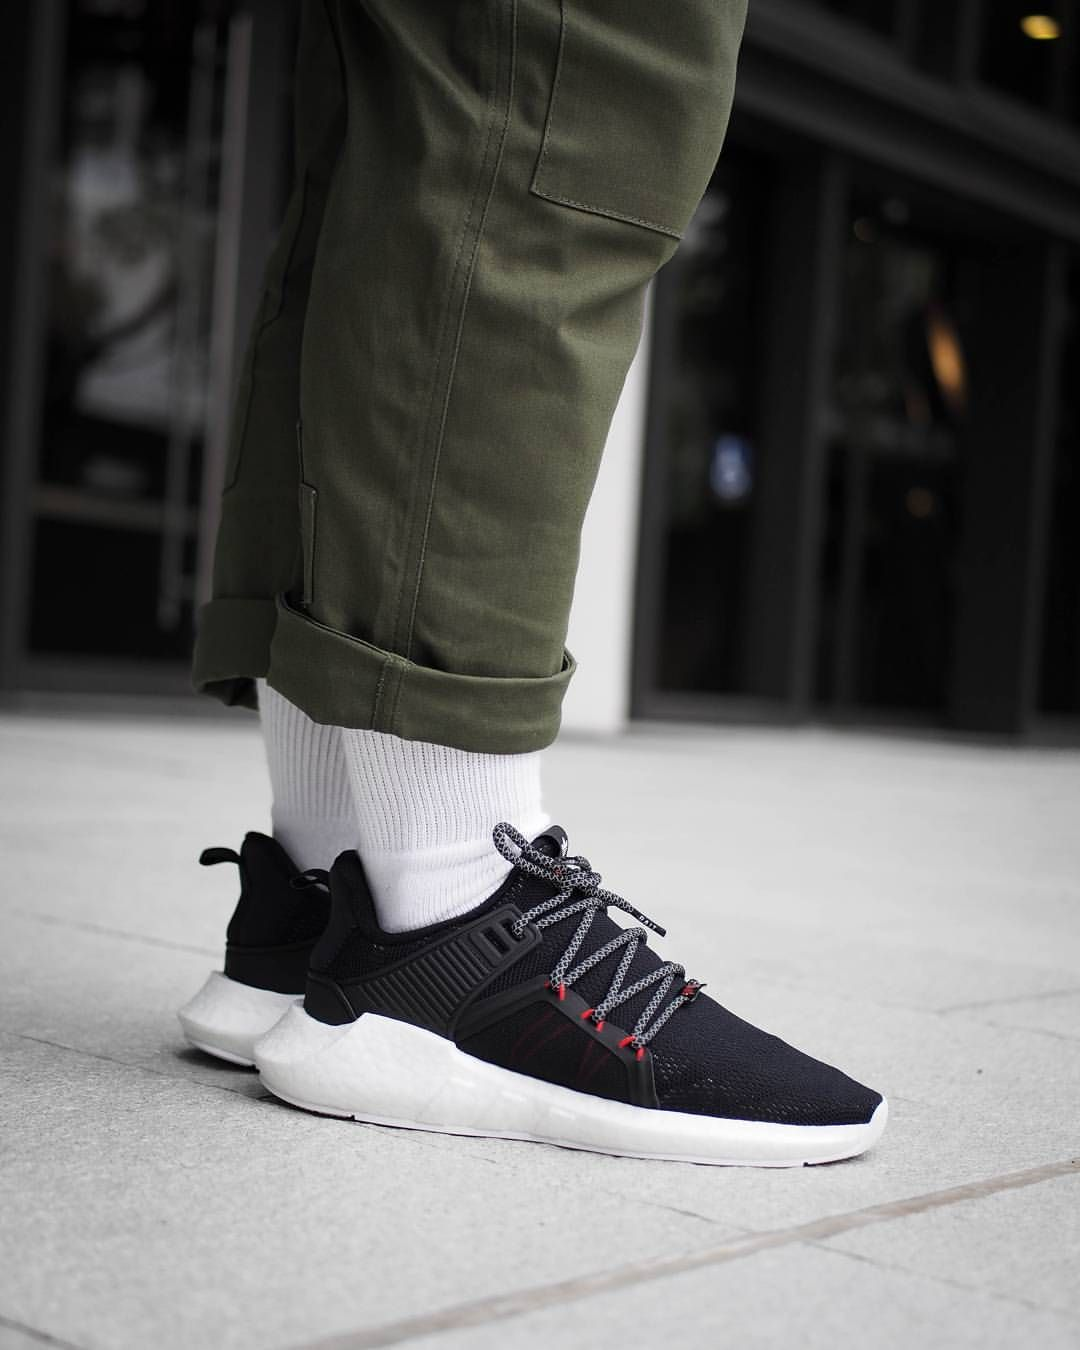 new style 23c5b bce9f BAIT x adidas Consortium EQT Support 93 17